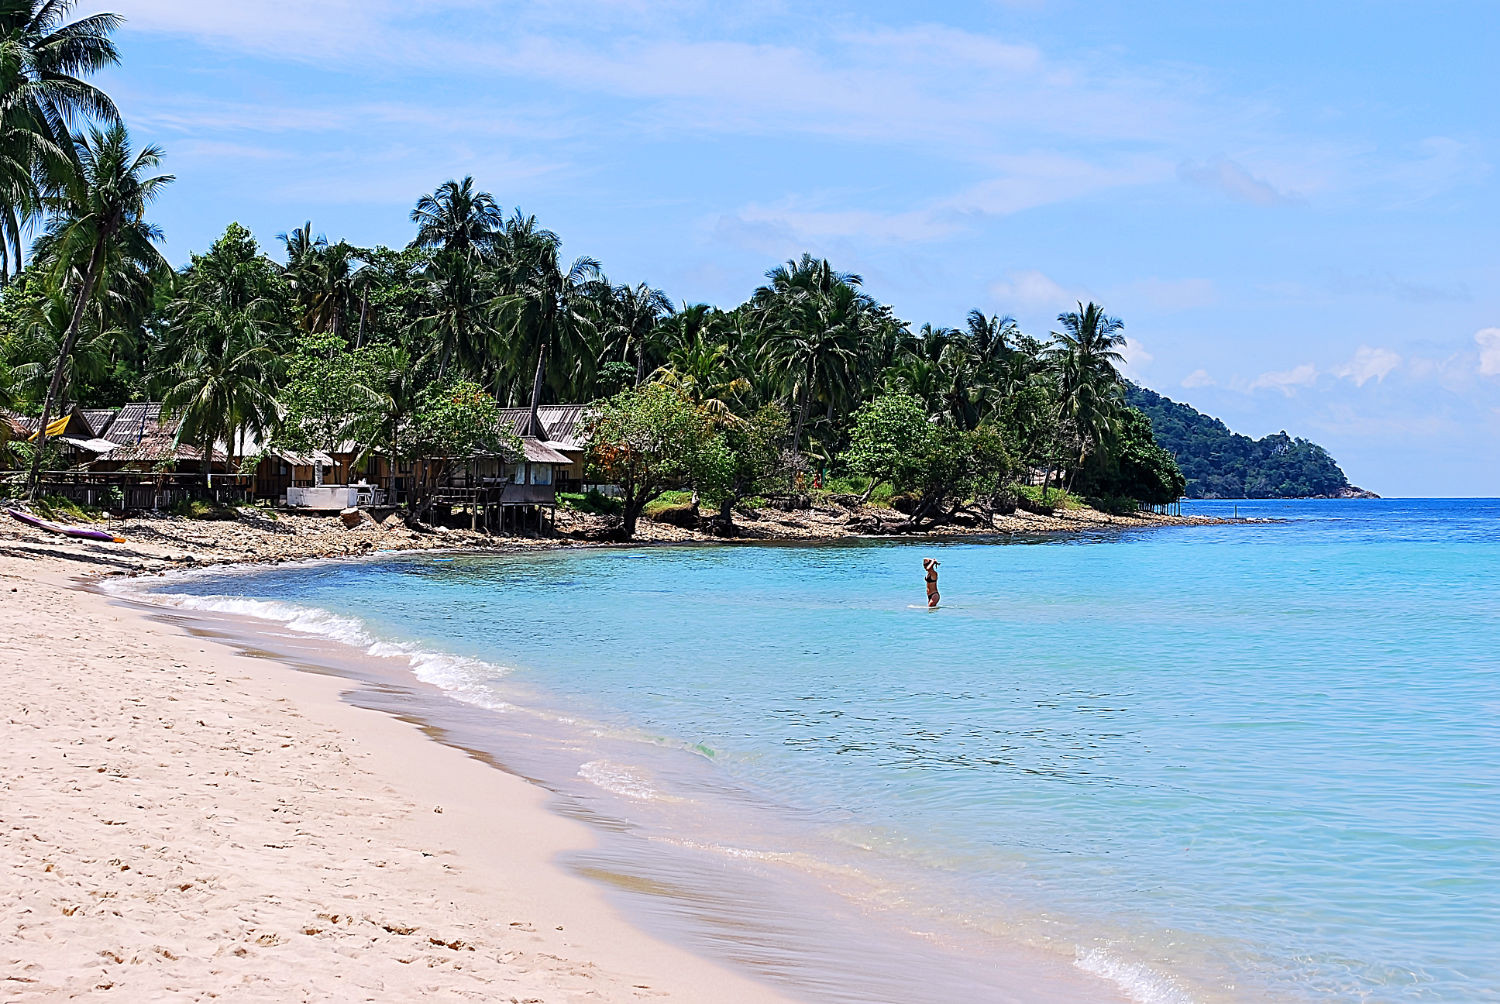 Lonely Beach on the island of Koh Chang in Thailand